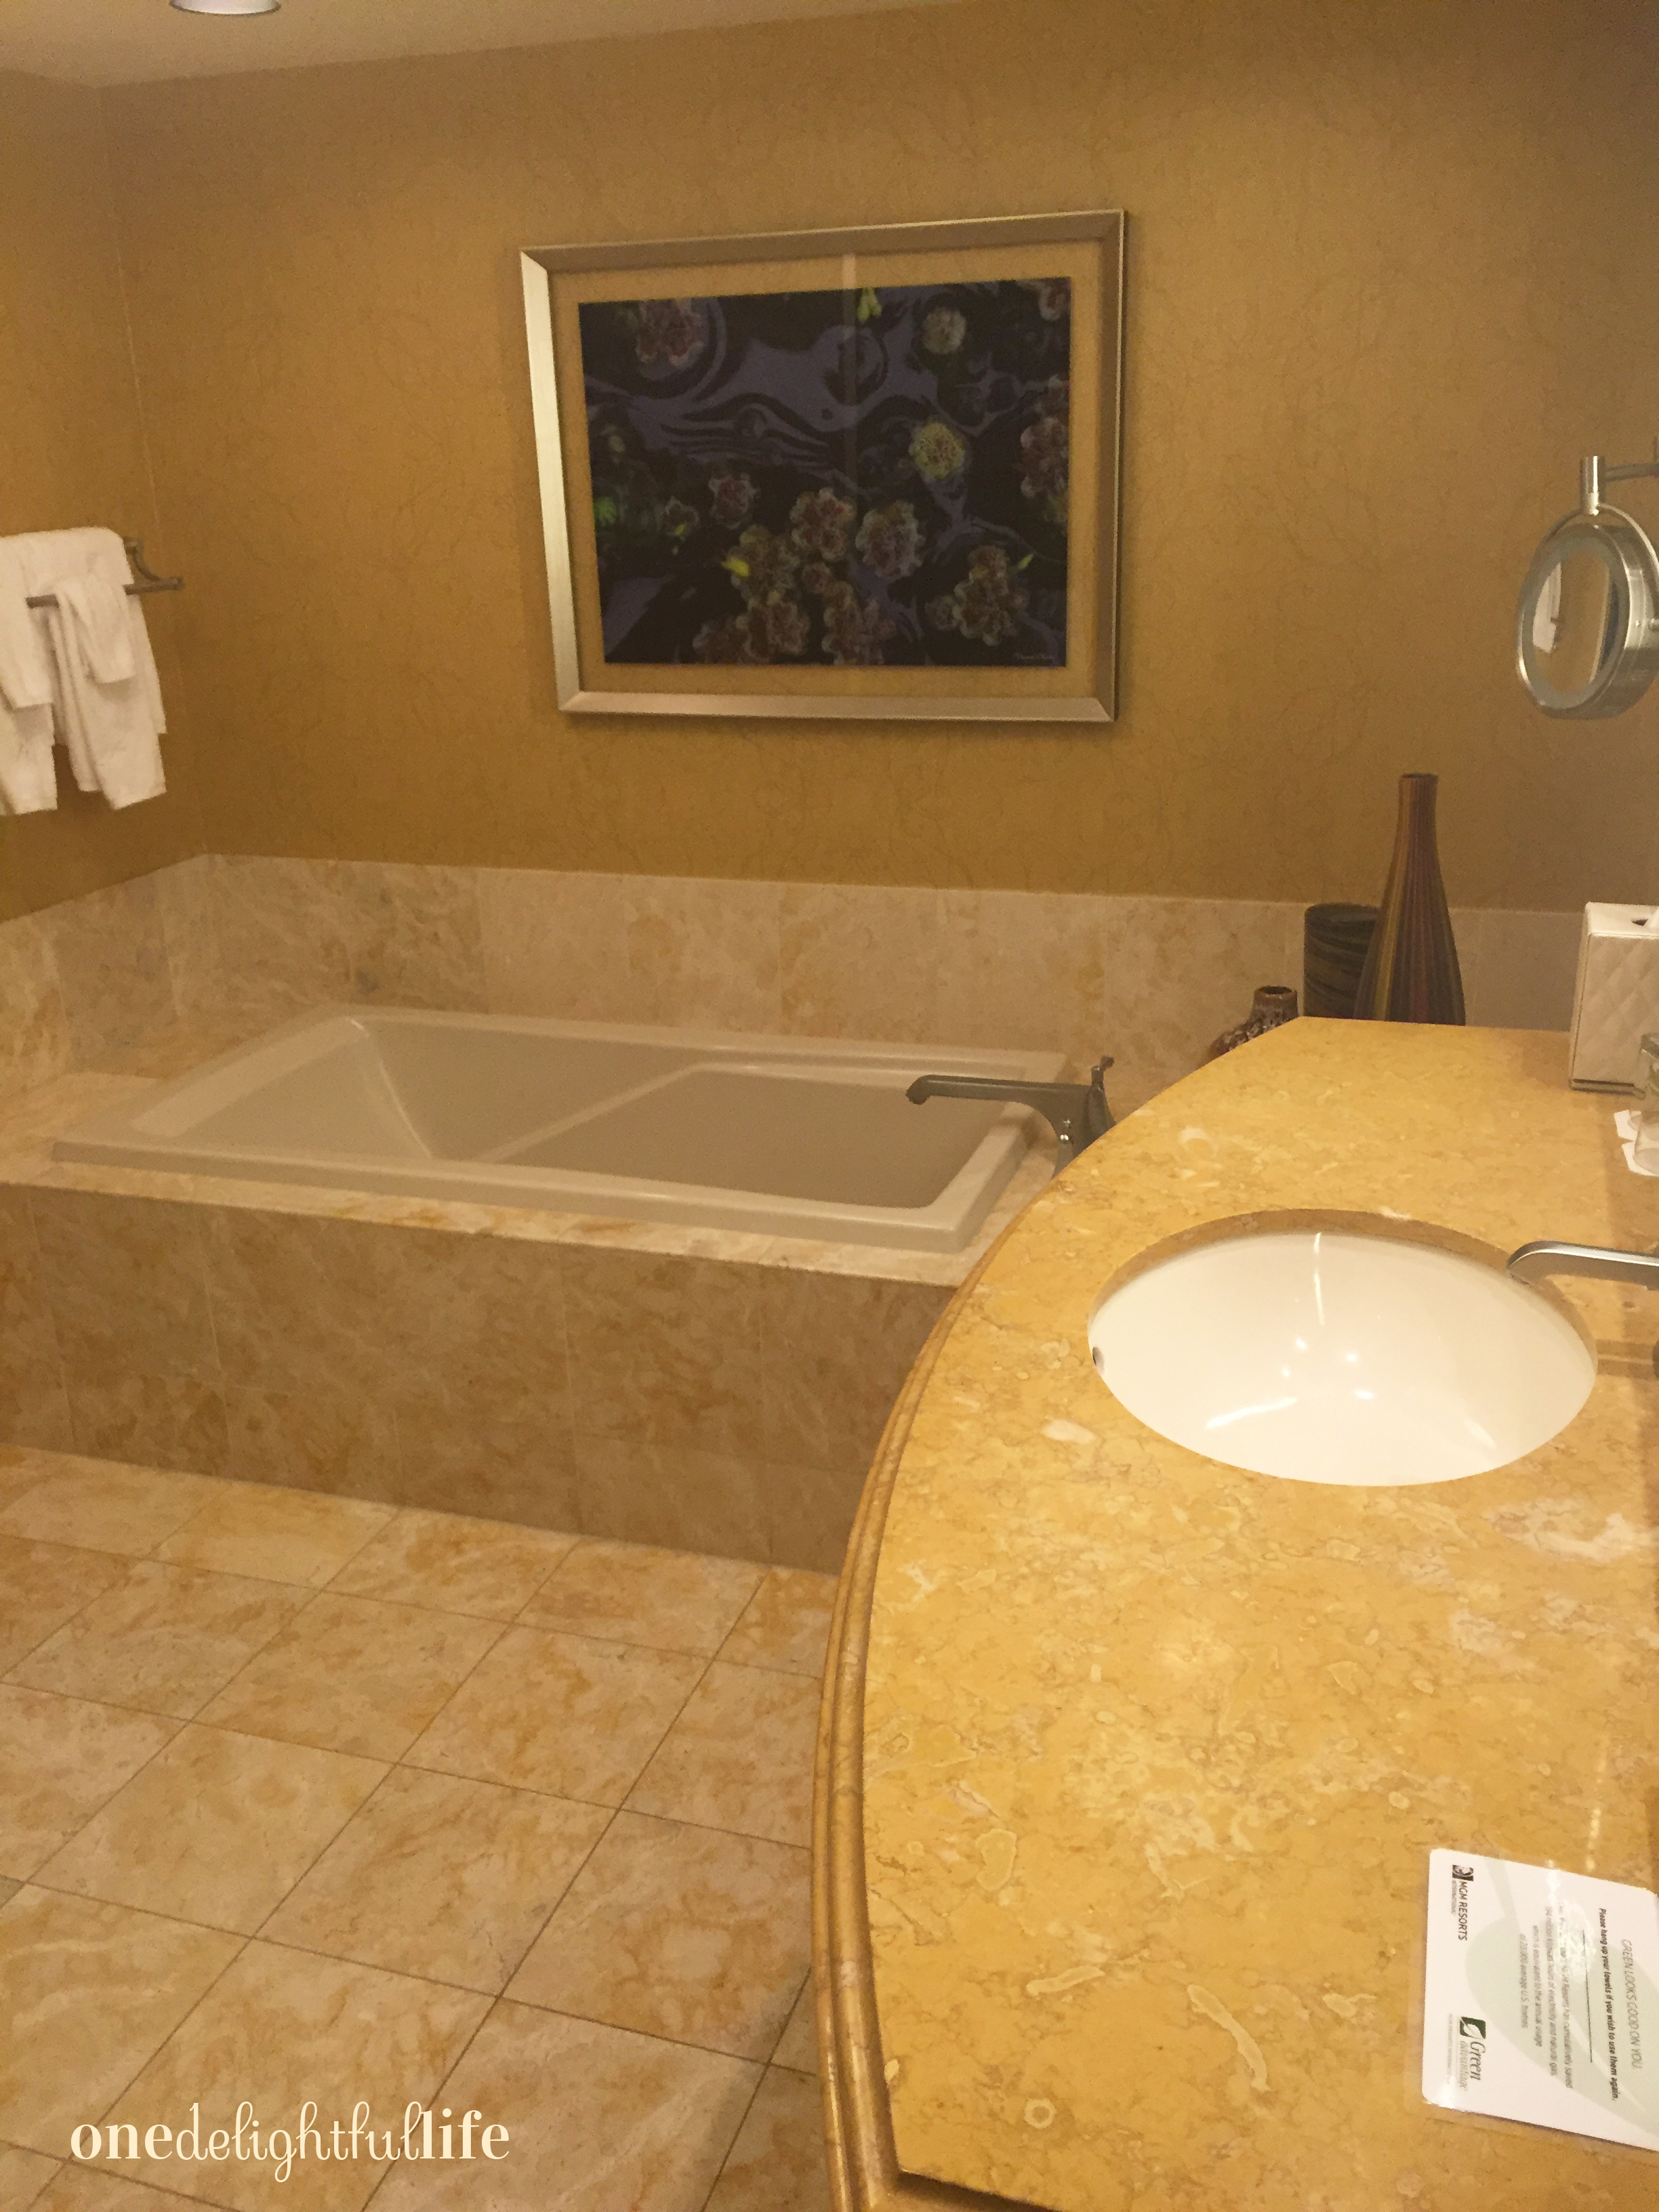 Each bathroom comes with a large glass enclosed shower and deep bathtub.